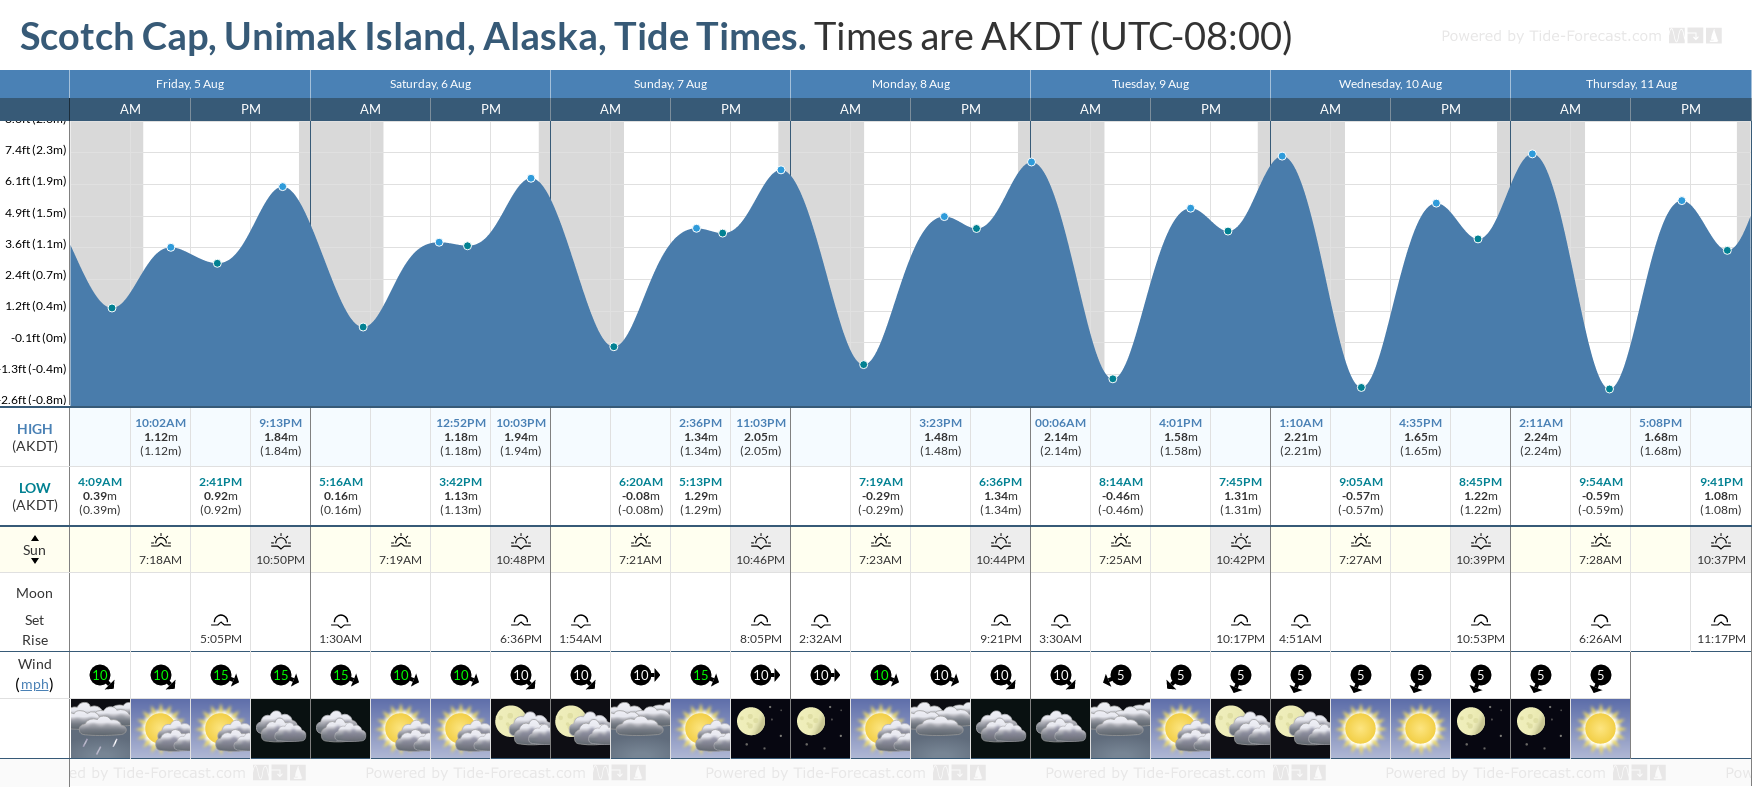 Scotch Cap, Unimak Island, Alaska Tide Chart including high and low tide tide times for the next 7 days